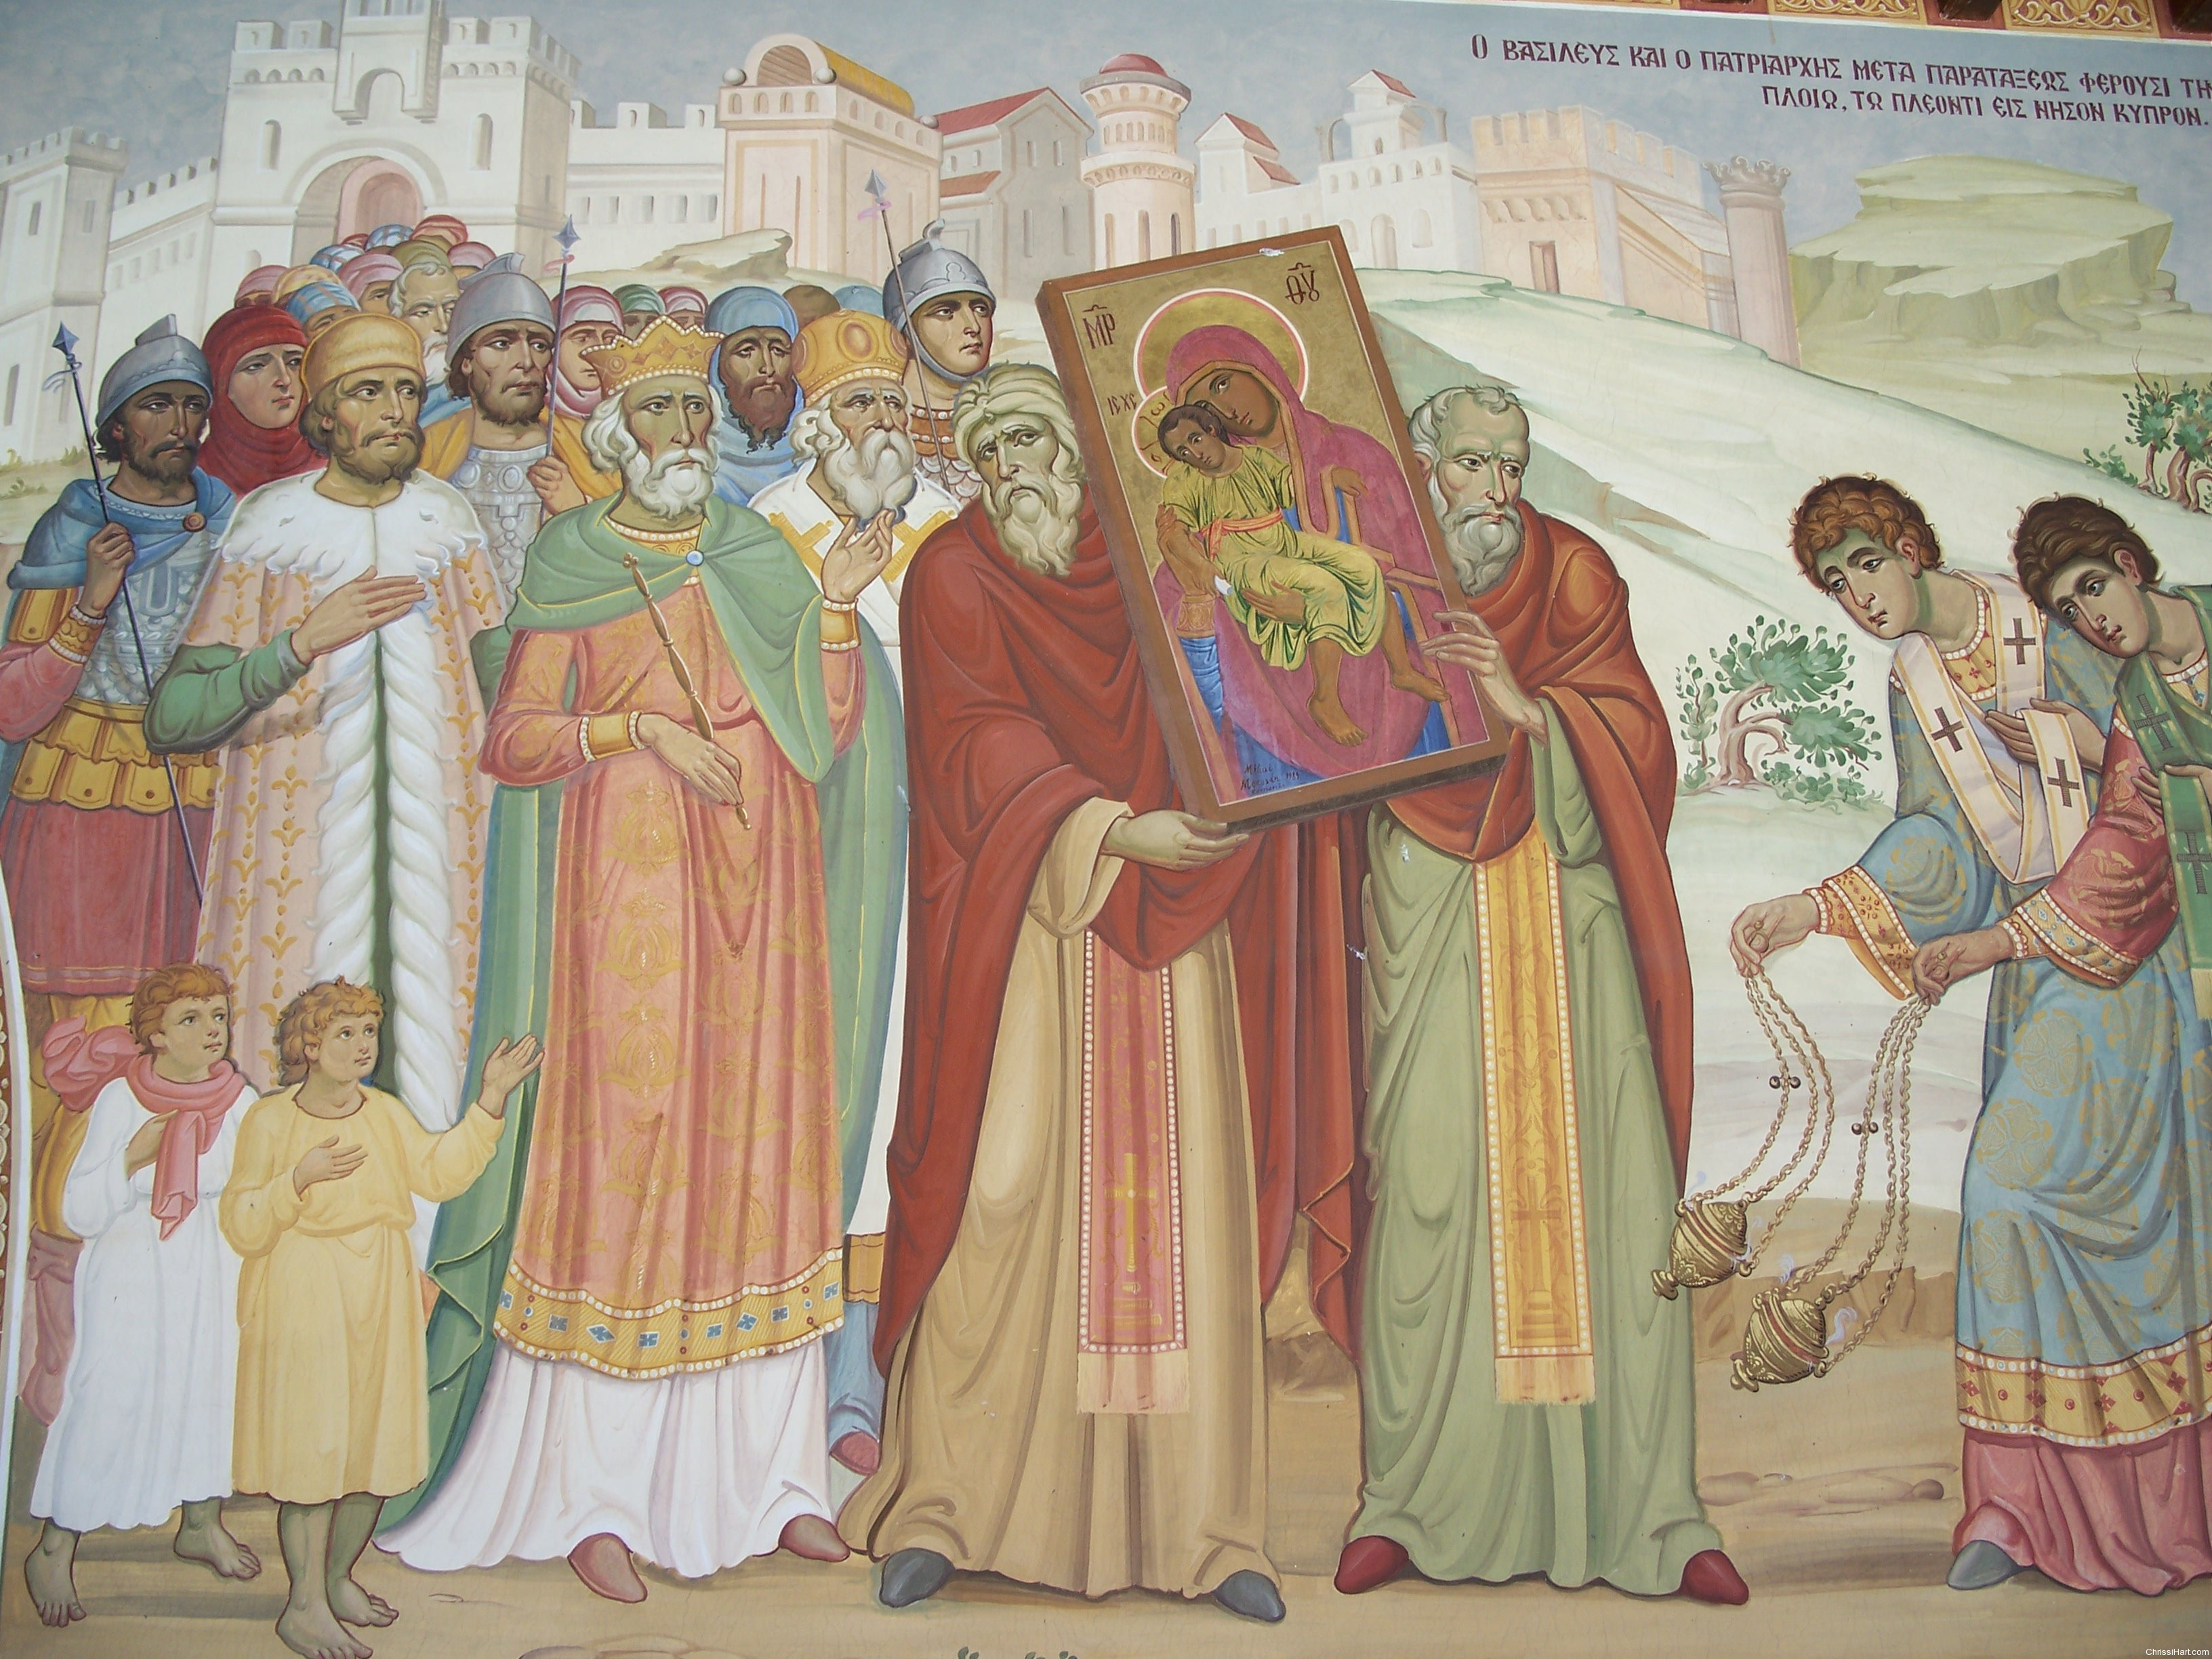 procession of icon from Constantinople